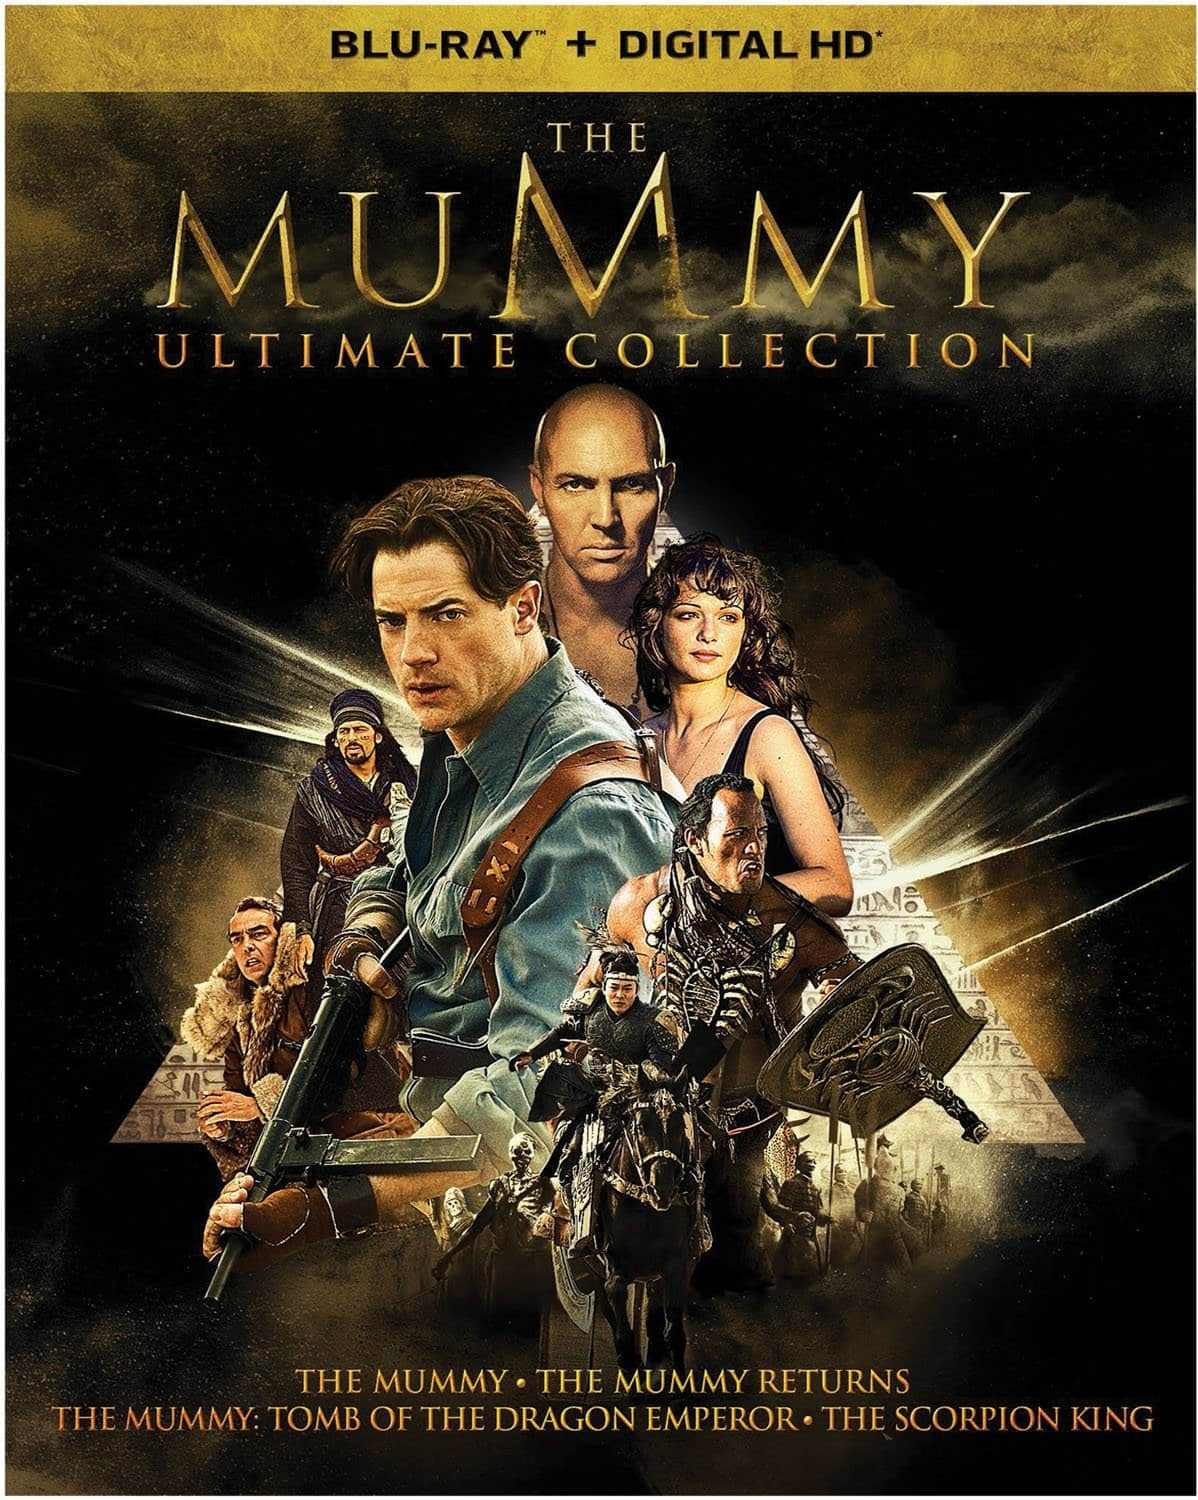 The Mummy: Ultimate Collection Pre-Order (Blu-Ray + Digital HD) $22.96 via Amazon